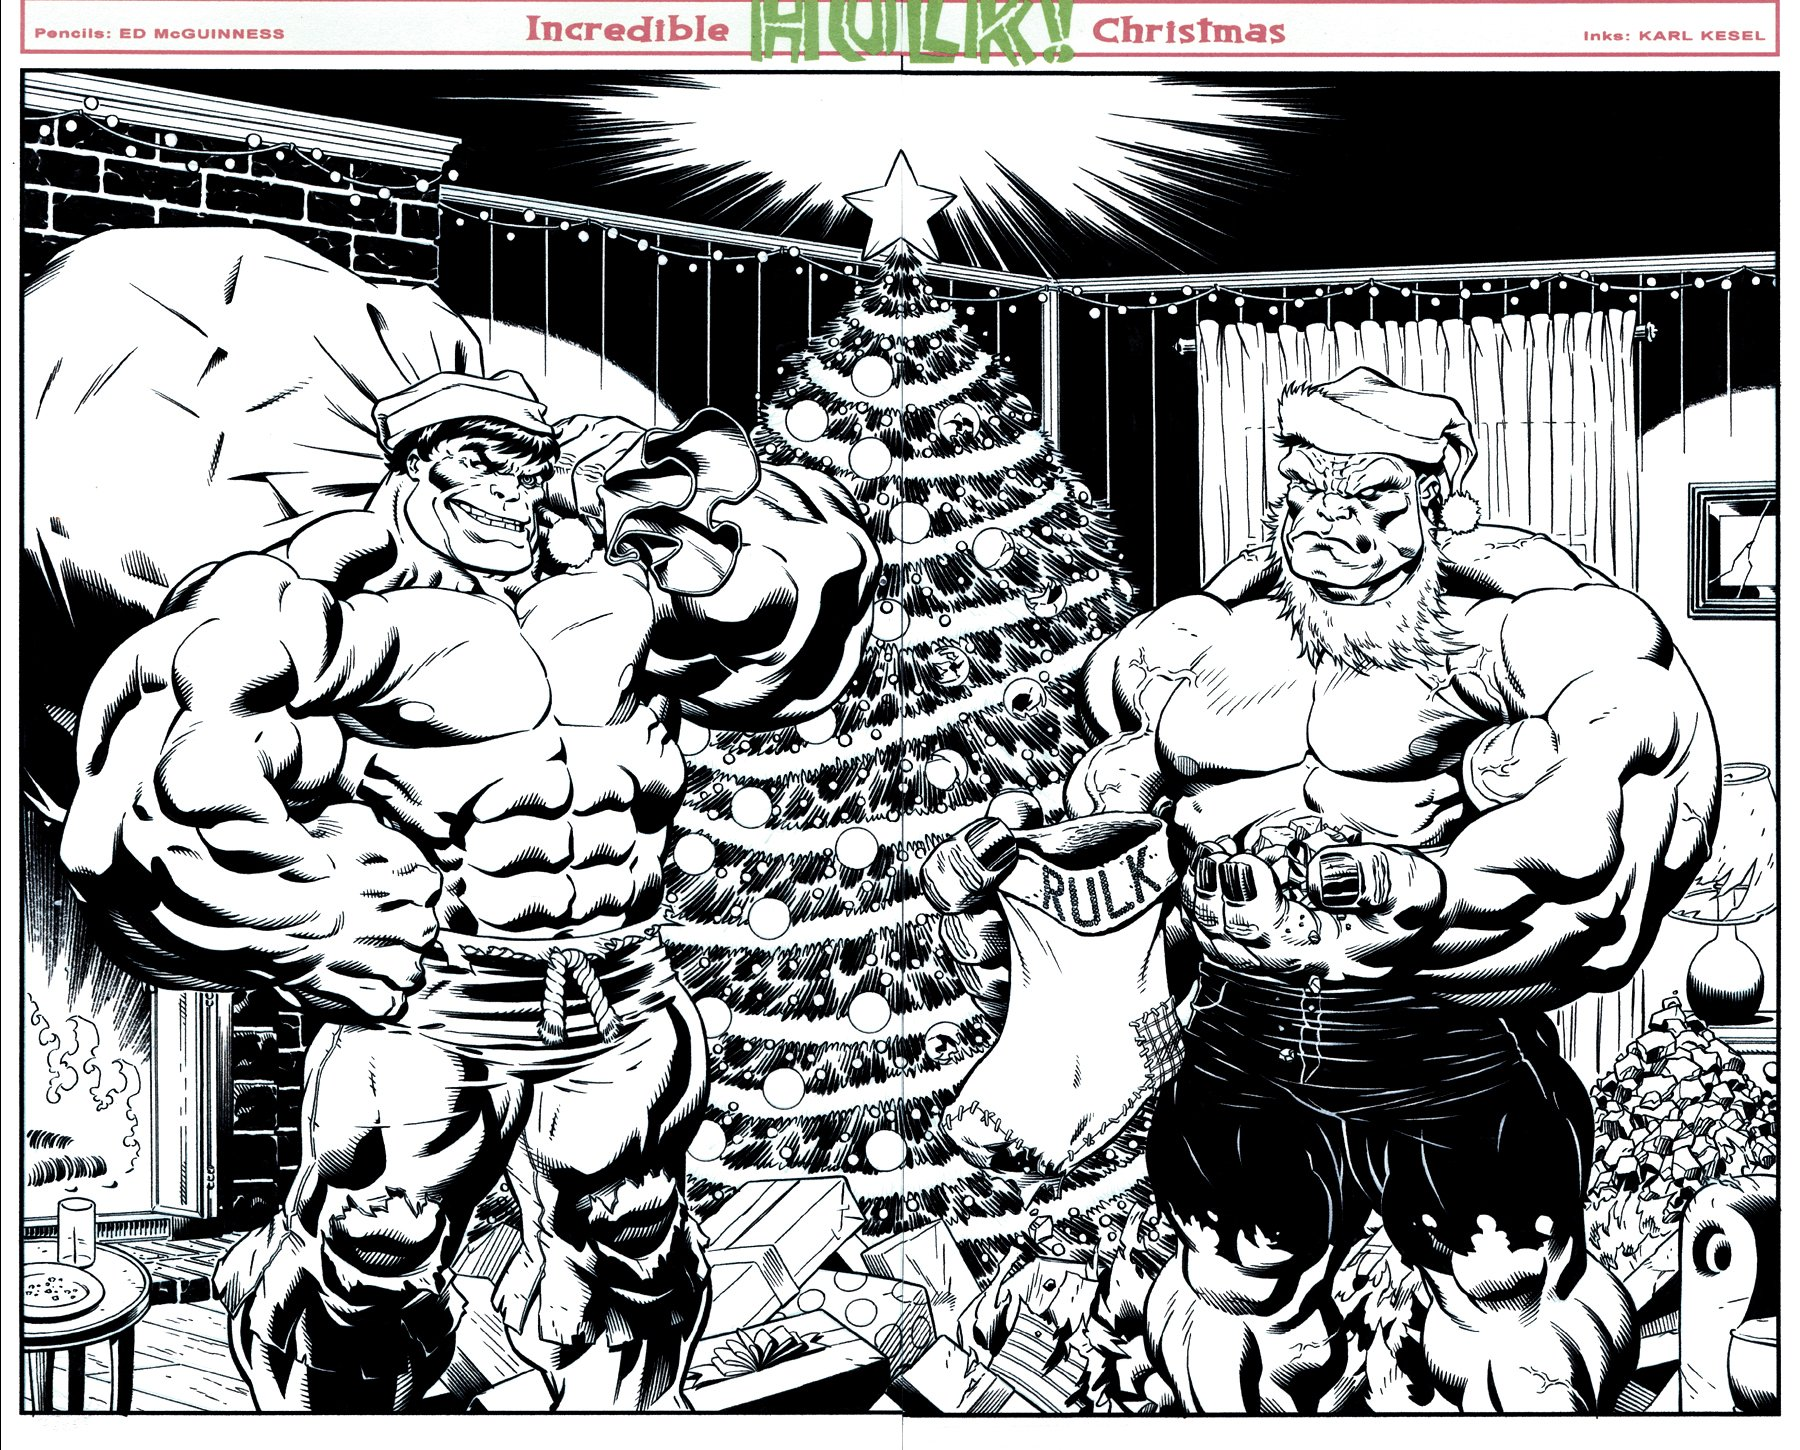 Hulk #9 Wraparound Double Cover (GREEN HULK & RED HULK CHRISTMAS SCENE!) 2008